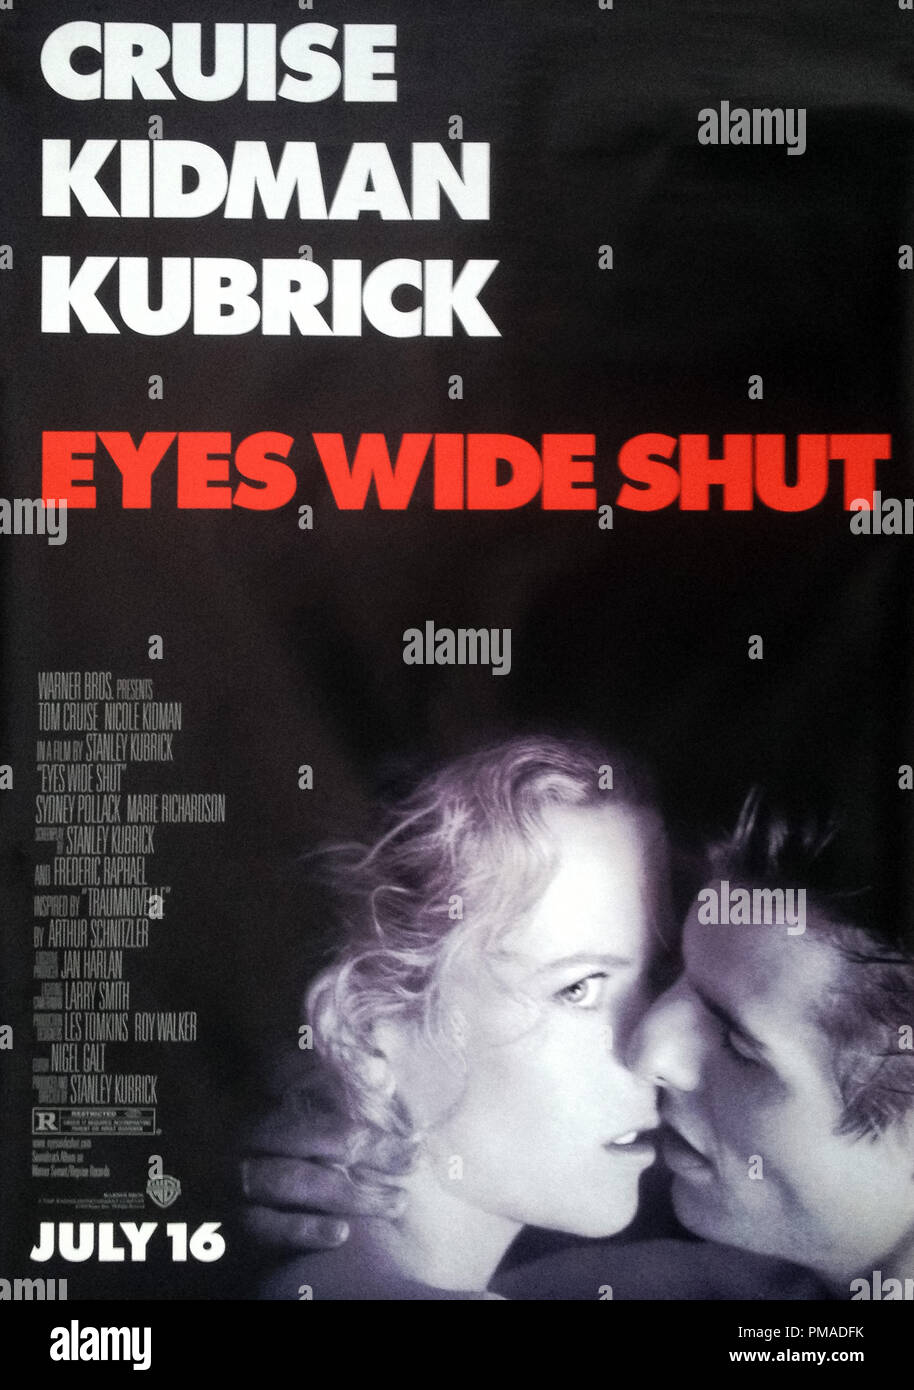 'Eyes Wide Shut' - US Poster 1999 Warner Bros.  Tom Cruise, Nicole Kidman  File Reference # 32509_139THA - Stock Image